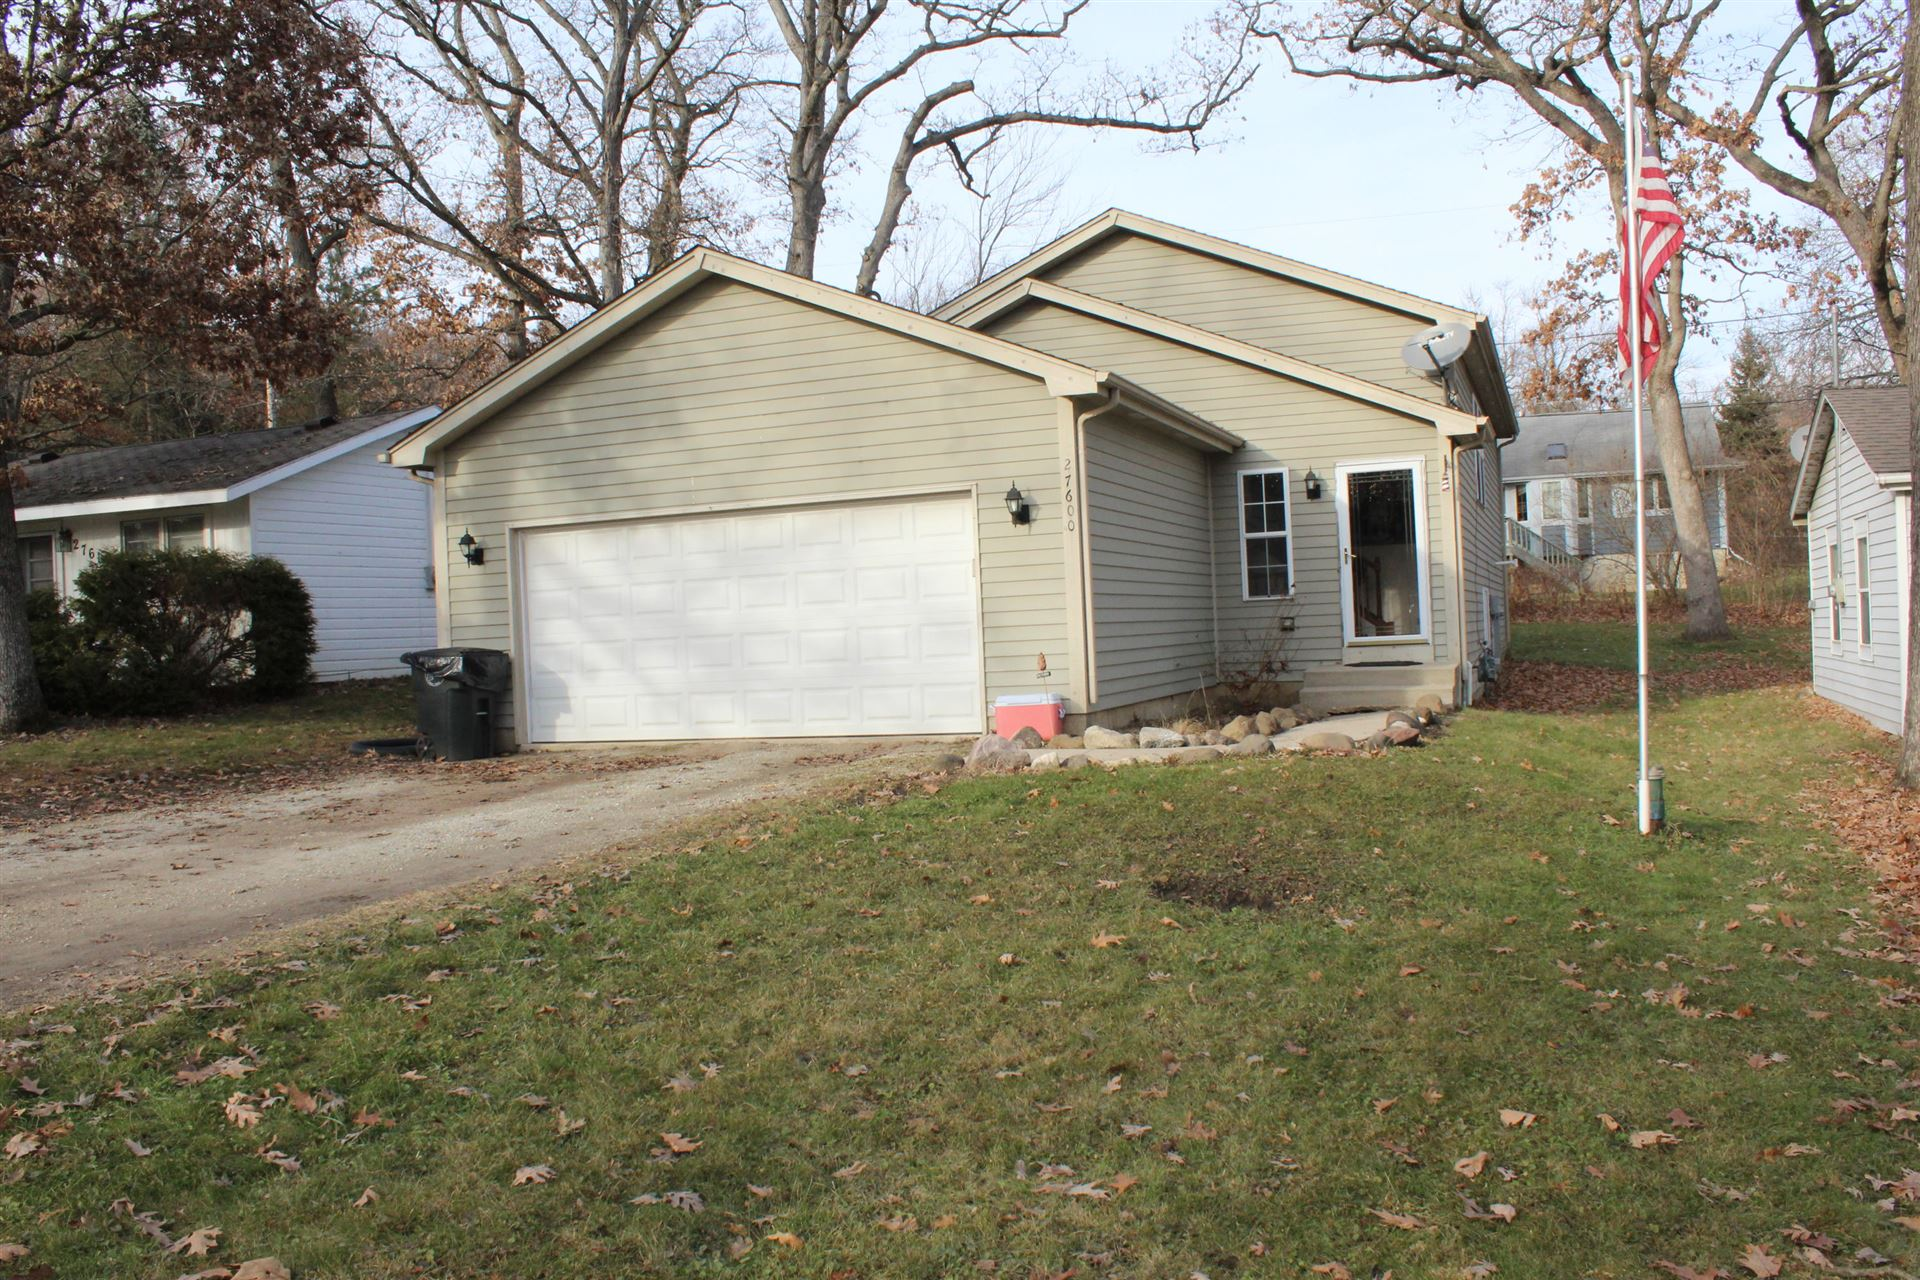 27600 94th St, Salem, WI 53168 - #: 1671200